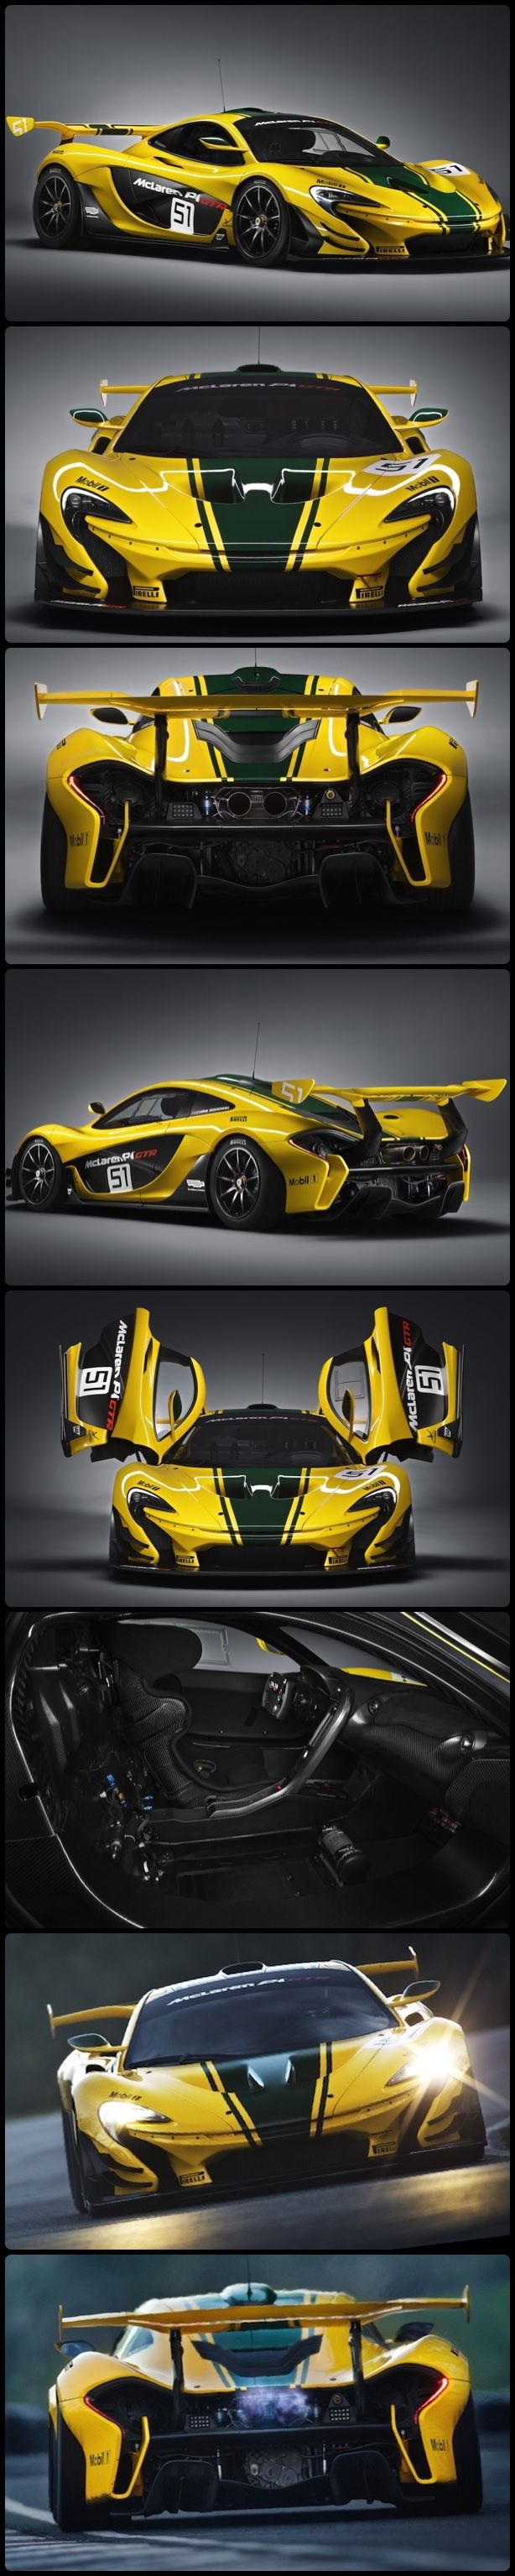 mclaren-p1-gtr-a-limited-production-pay-the-engineers-an-extra-15g-and-you-can.jpg